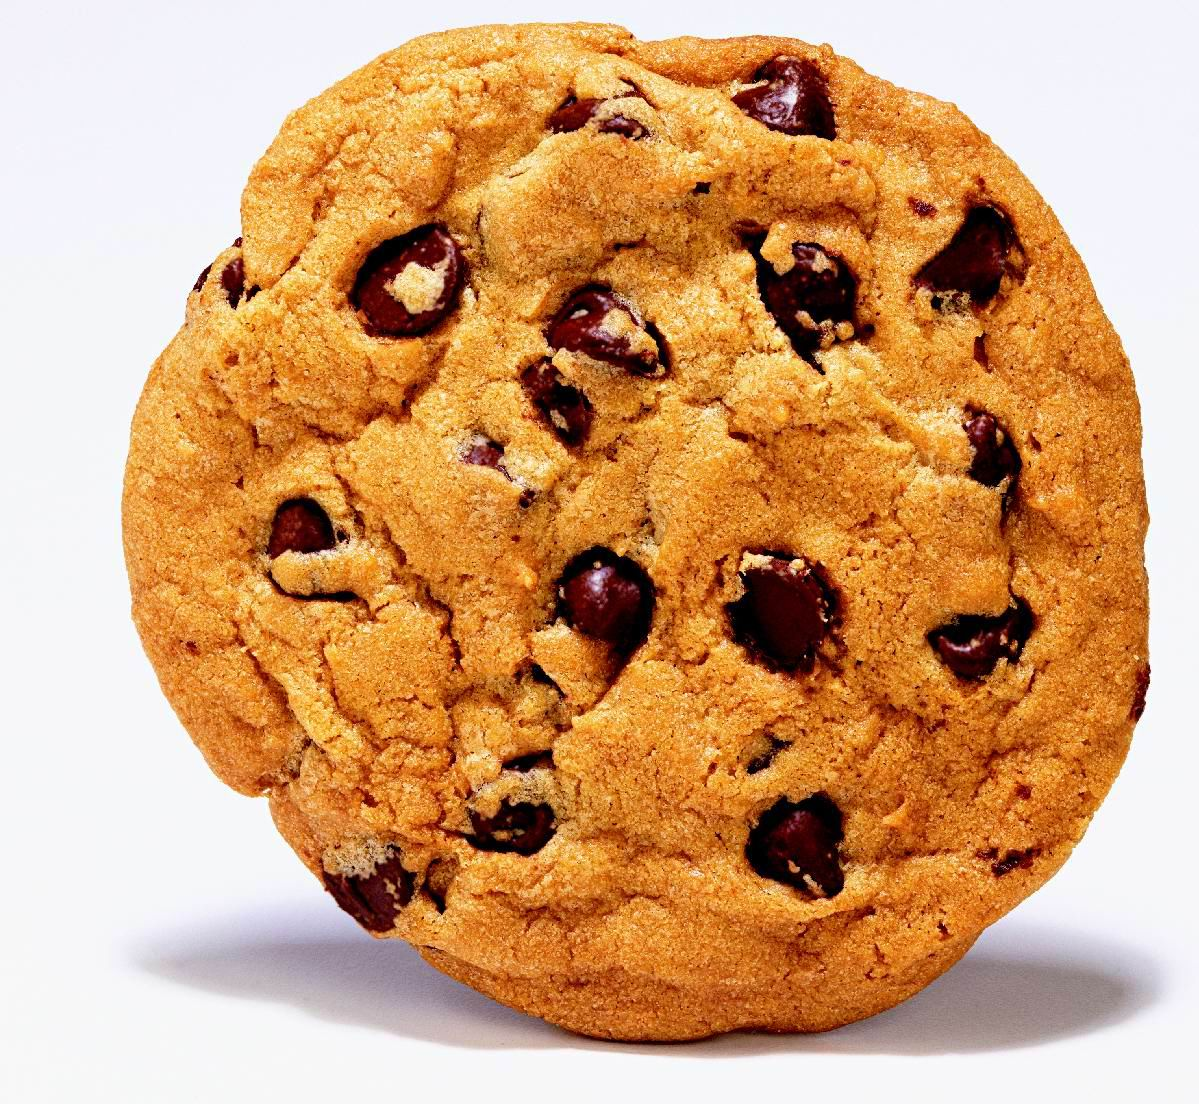 Chocolate Chip Cookie   Free Images At Clker Com   Vector Clip Art